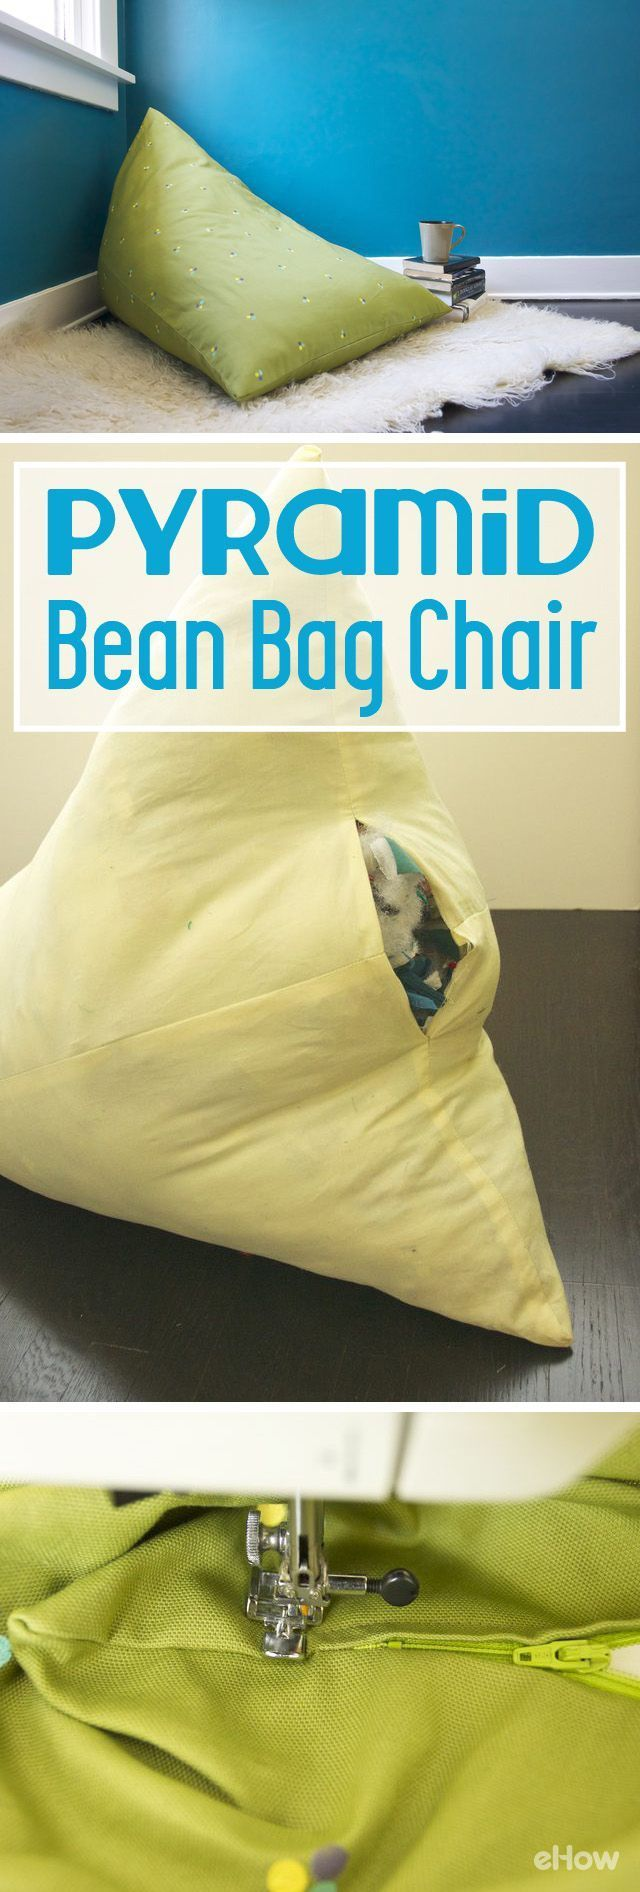 How to make bean bag chairs - How To Make A Pyramid Beanbag Chair